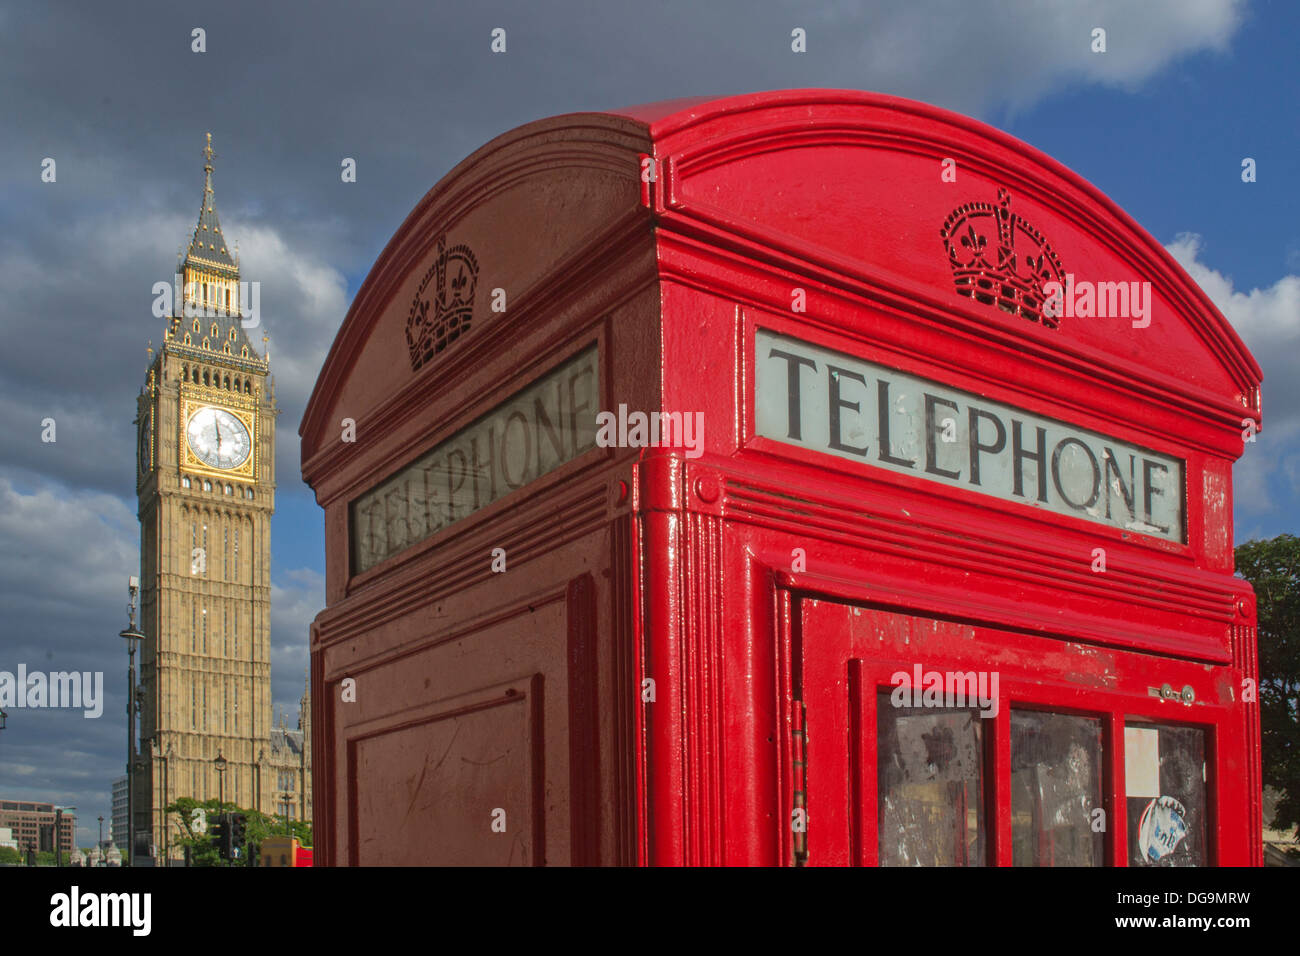 Traditional Red Telephone Box with Elizabeth Tower / Big Ben at the north end of the Palace of Westminster in the background, - Stock Image